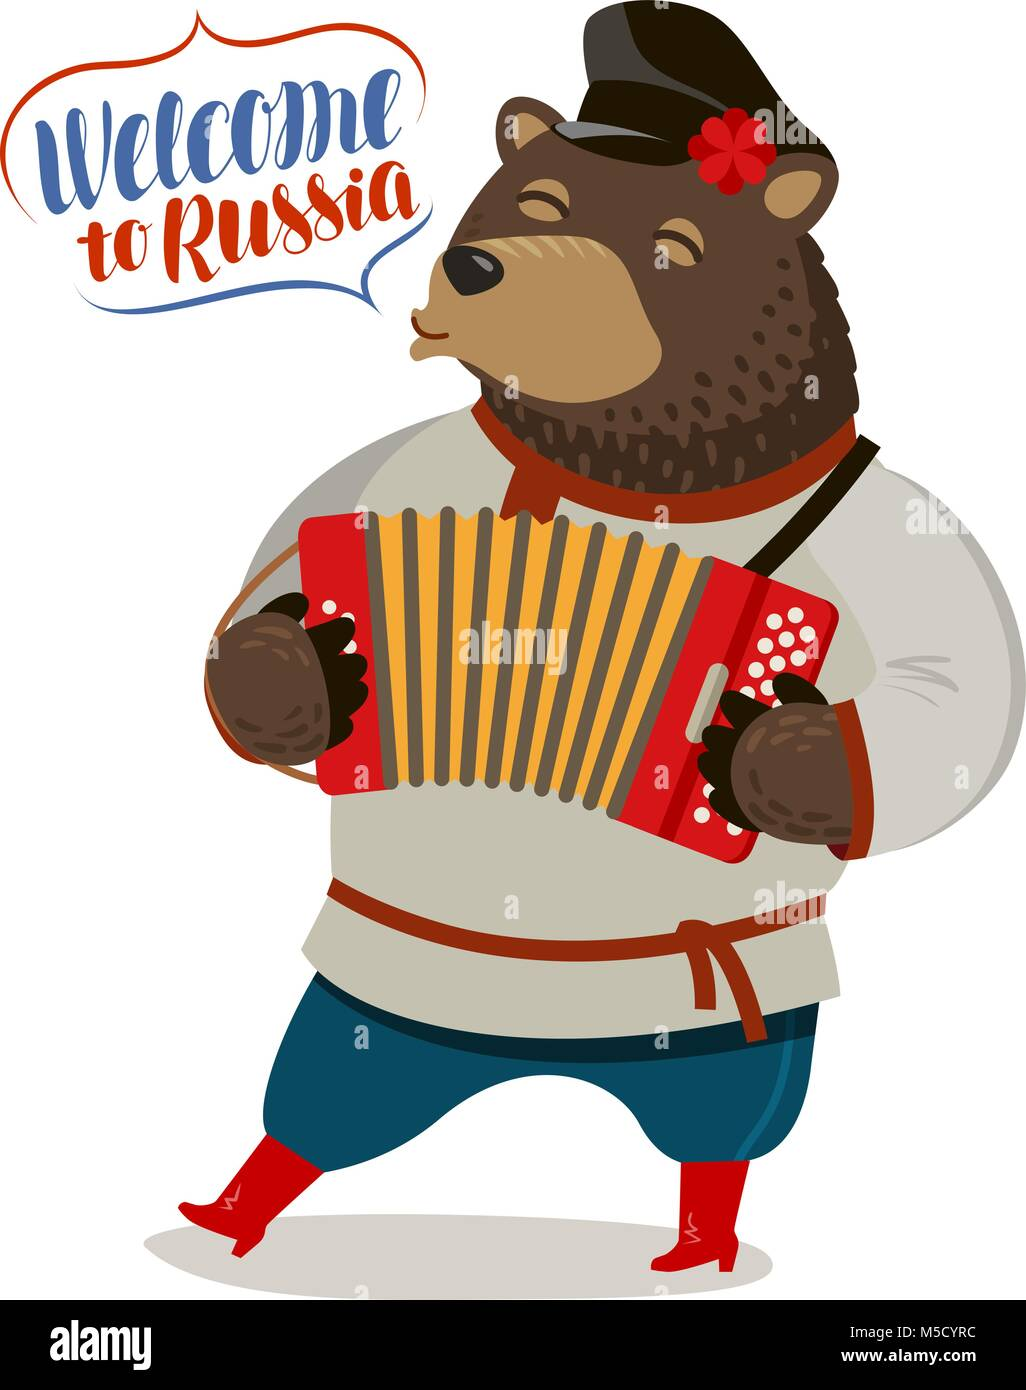 Russian fun bear playing accordion. Welcome to Russia, banner. Cartoon vector illustration - Stock Vector